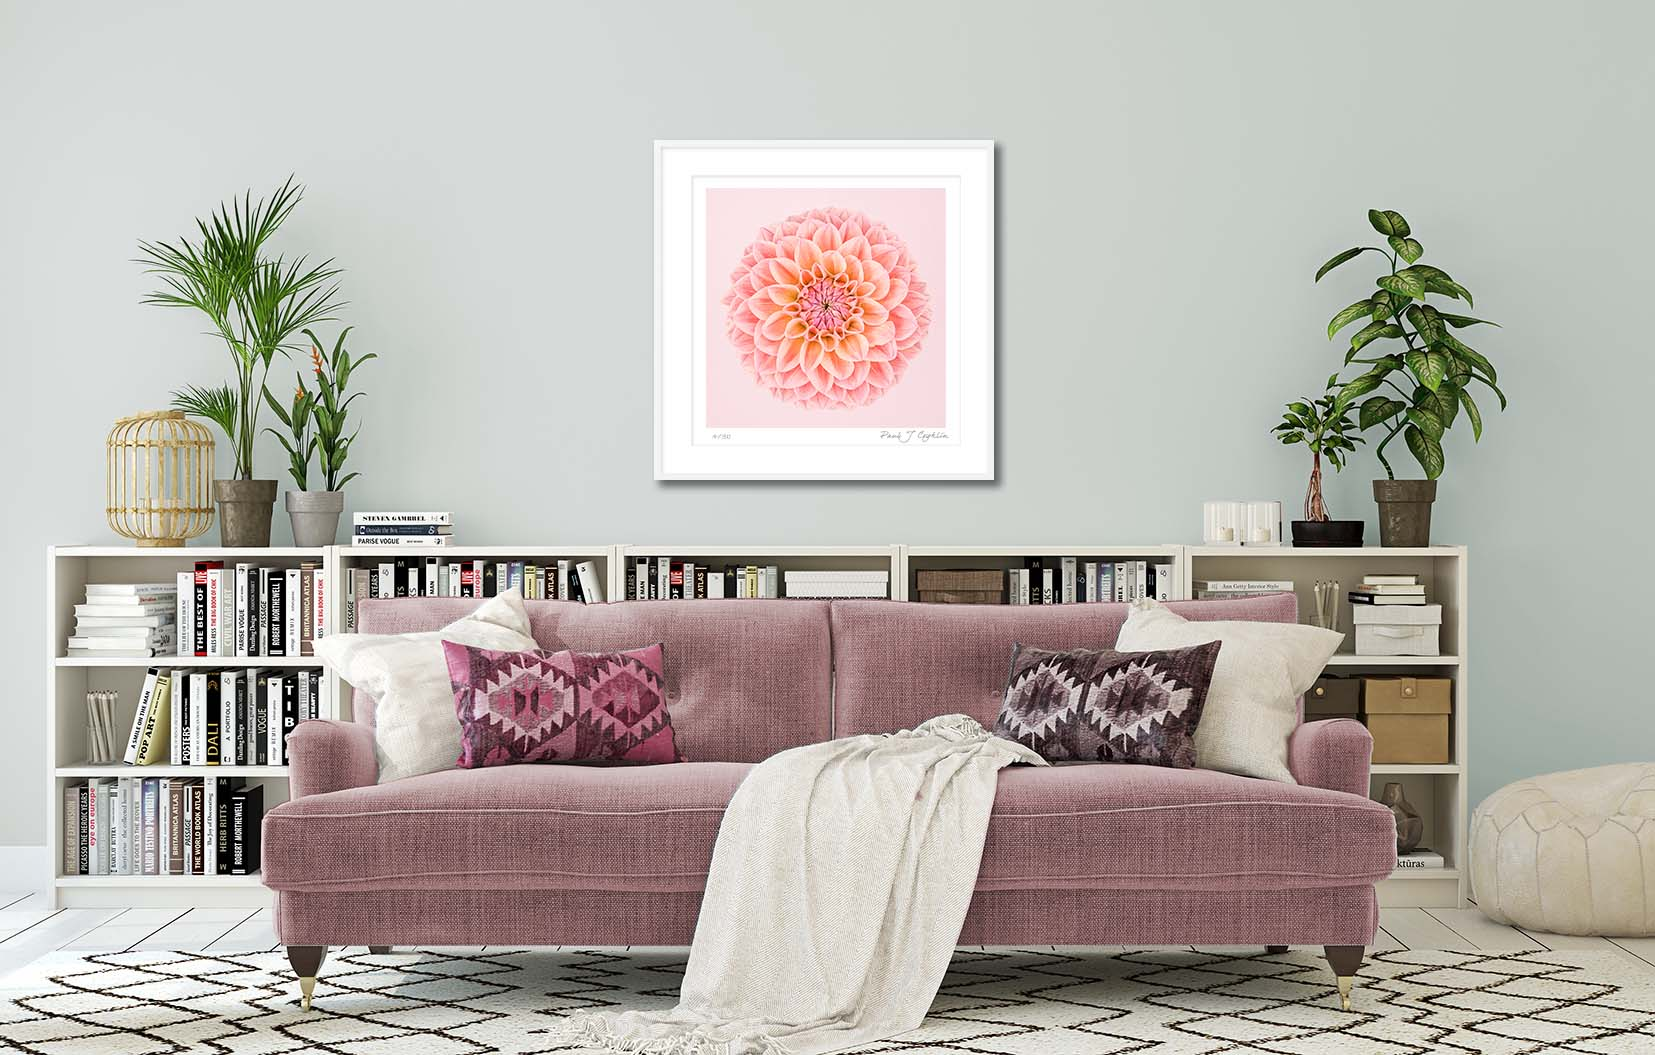 Pink Dahlia Circle I. Limited edition fine art print of a pink dahlia. Botanical prints and floral studies by fine art photographer Paul Coghlin.